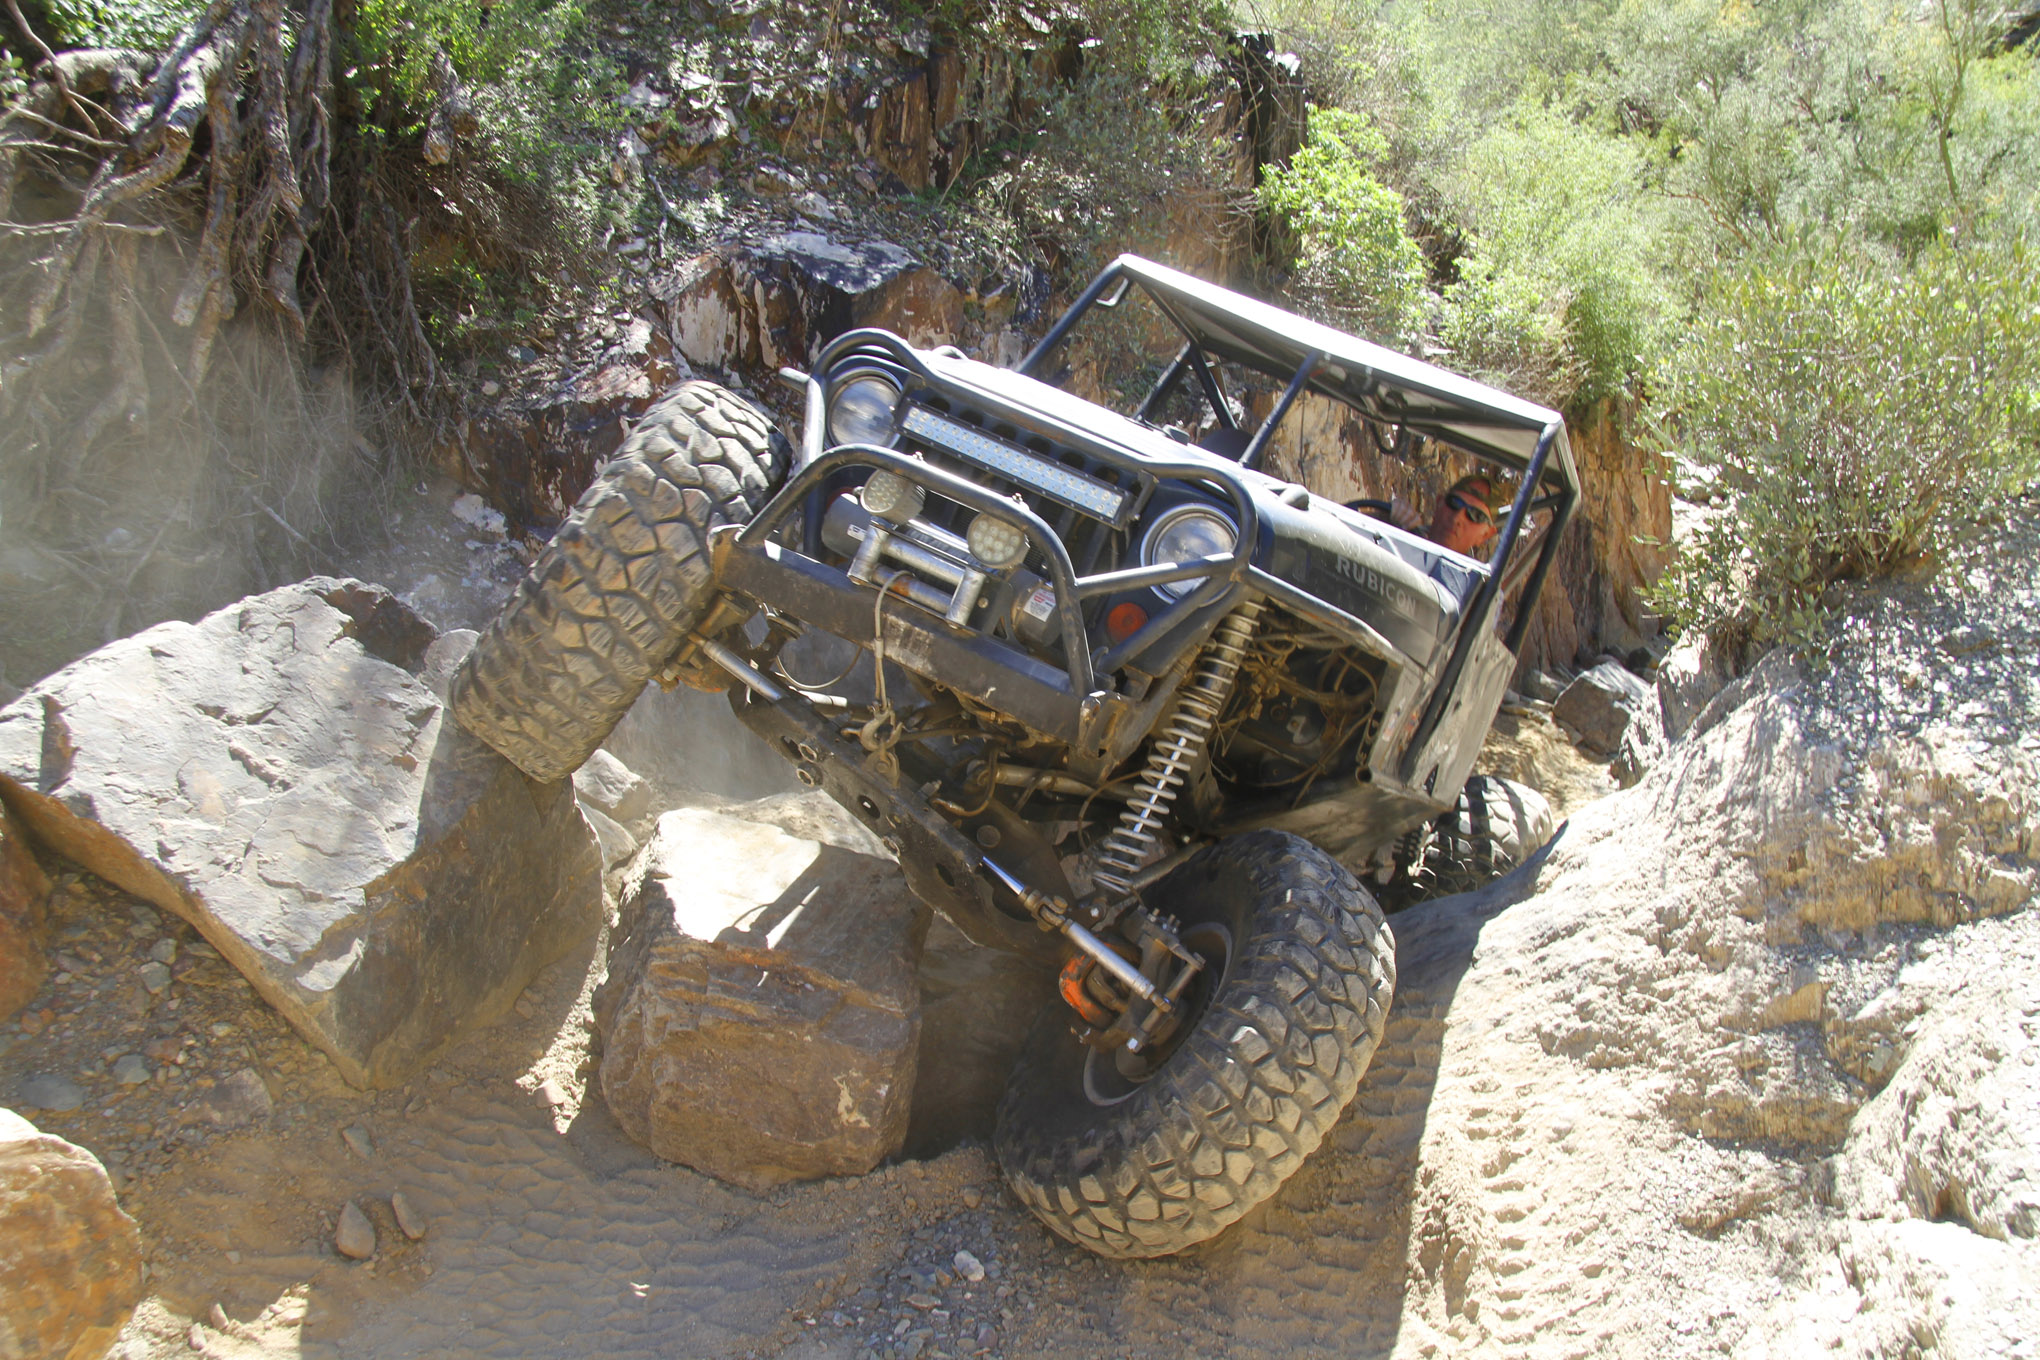 The final climb up and out of the chute on Anaconda can be tricky with this axle-grabbing boulder. Dan Felix threaded his 2006 Rubicon Unlimited up and over the rocks with the help of 39-inch BFG Red Label Krawlers on a RuffStuff 609 front axle and a GM 14-Bolt rear axle.